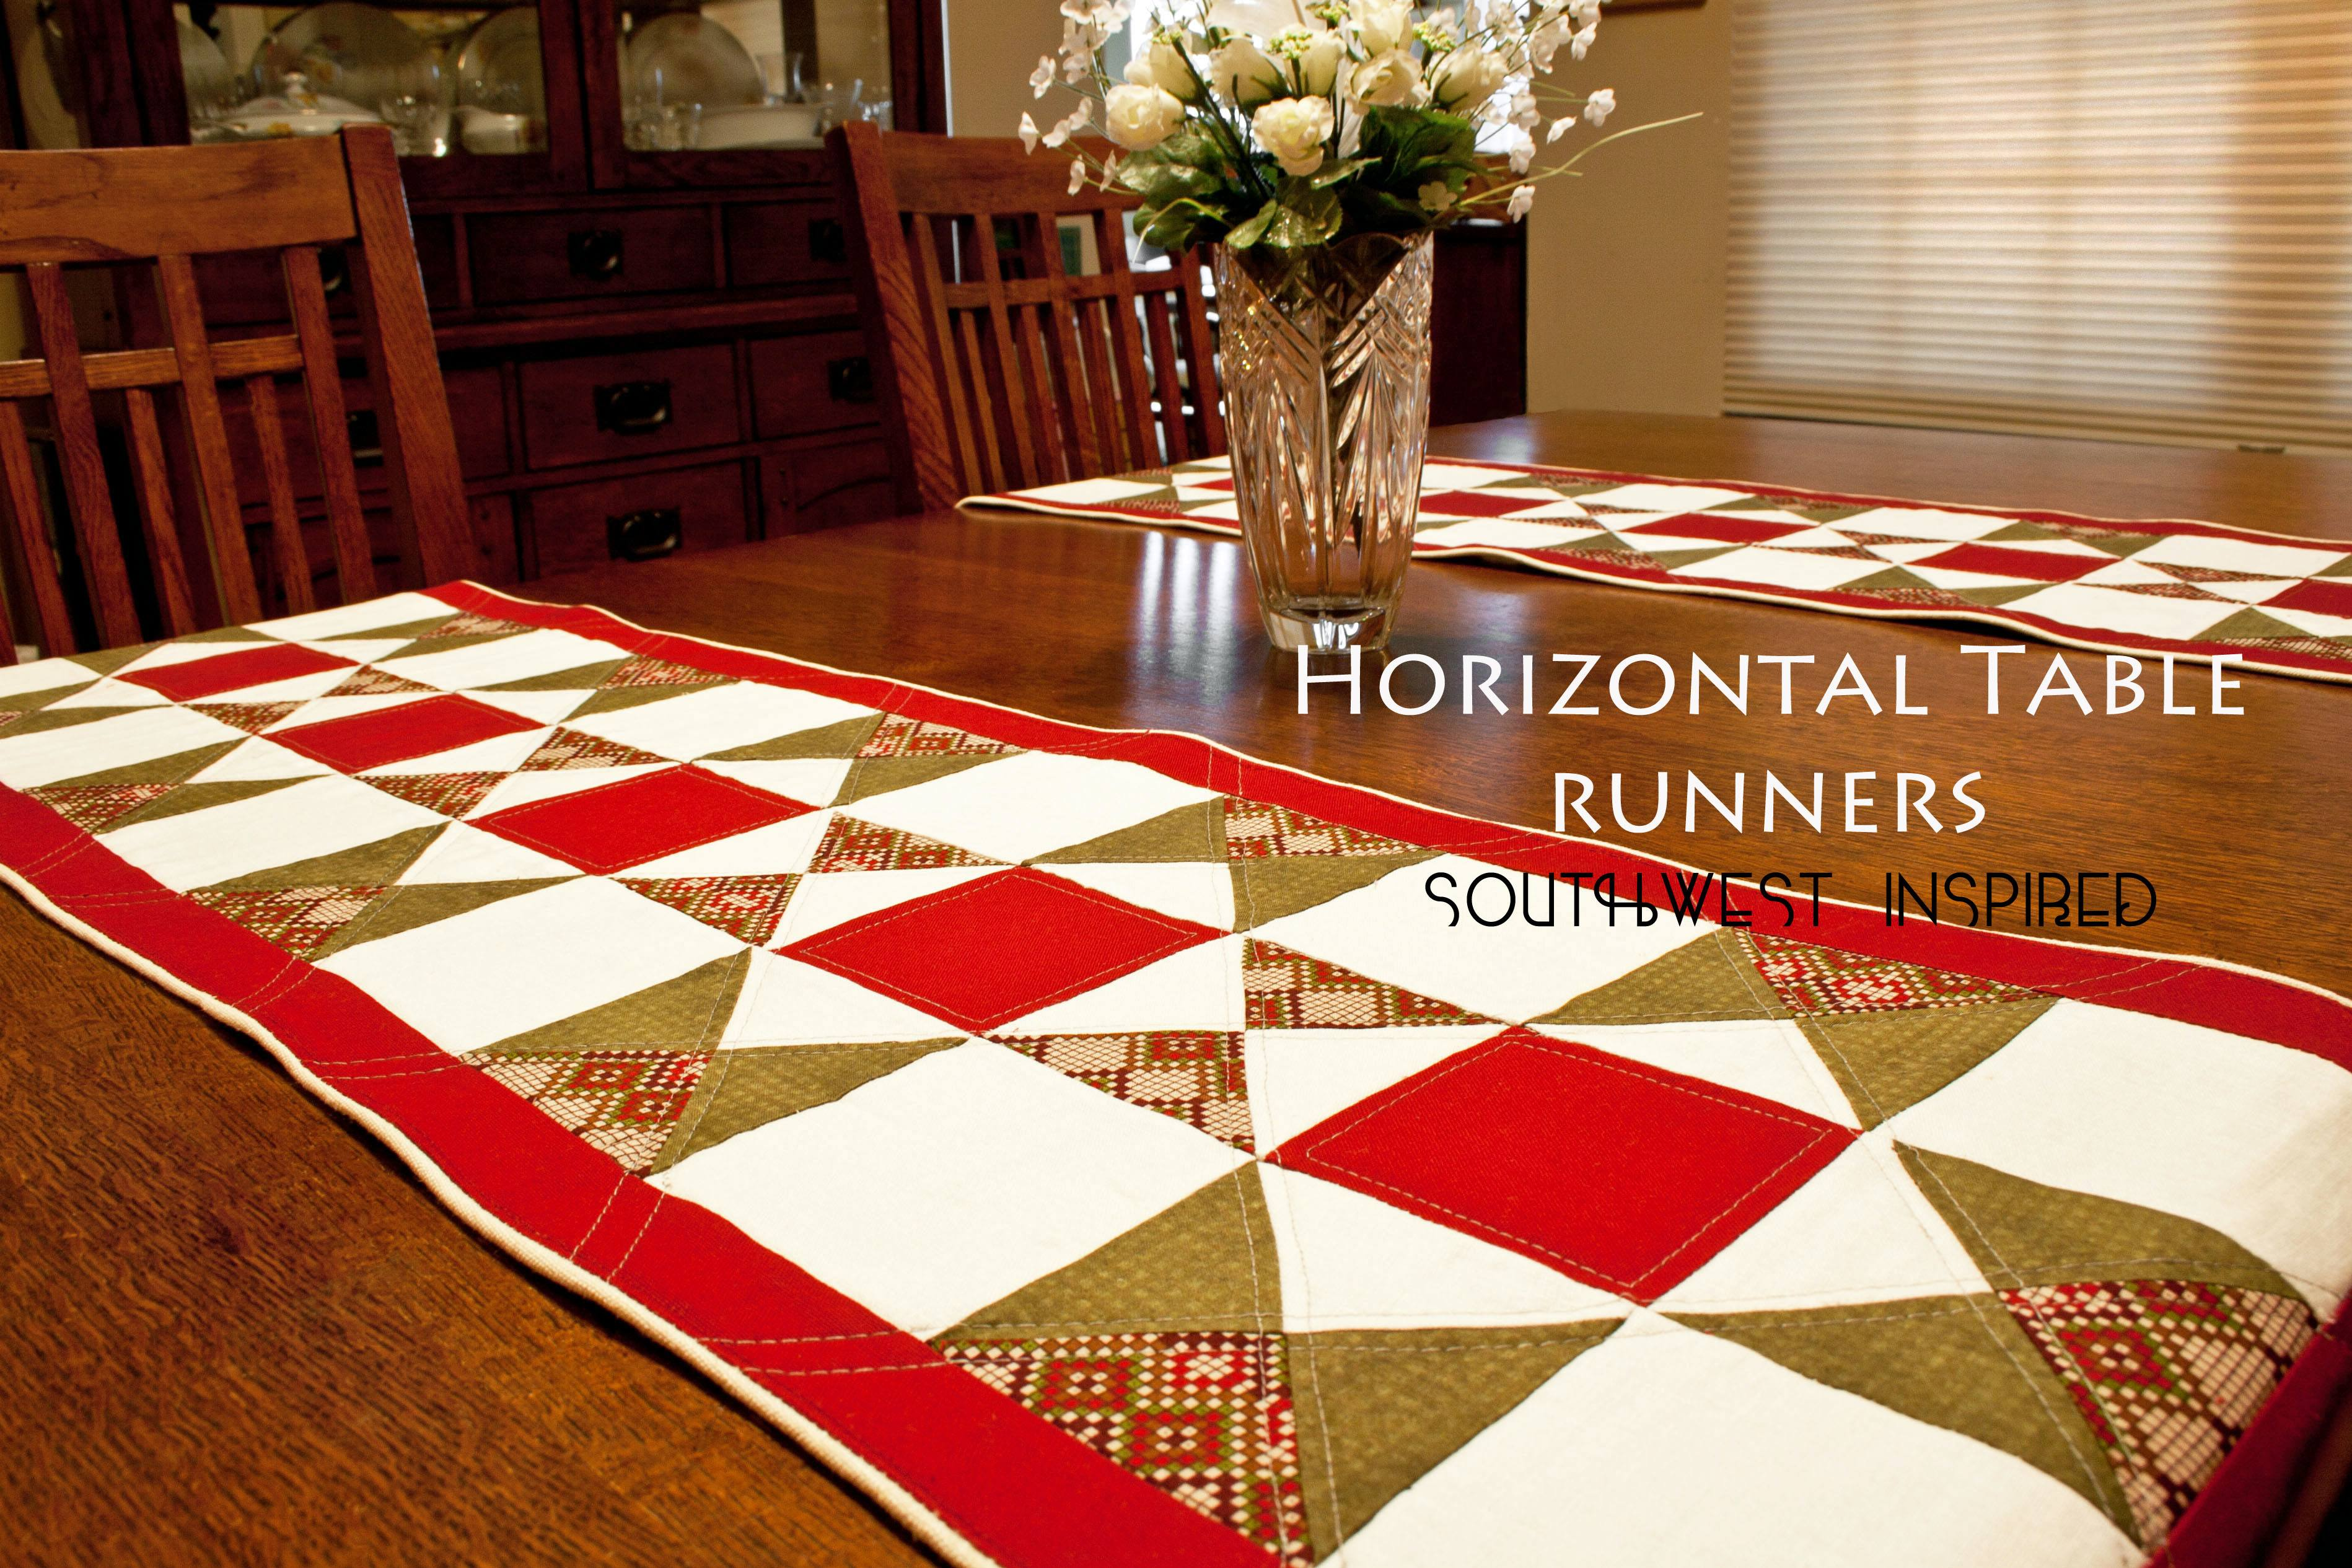 Southwest Inspired Horizontal Table Runner   Sewing Parts Online    Everything Sewing, Delivered Quickly To Your Door